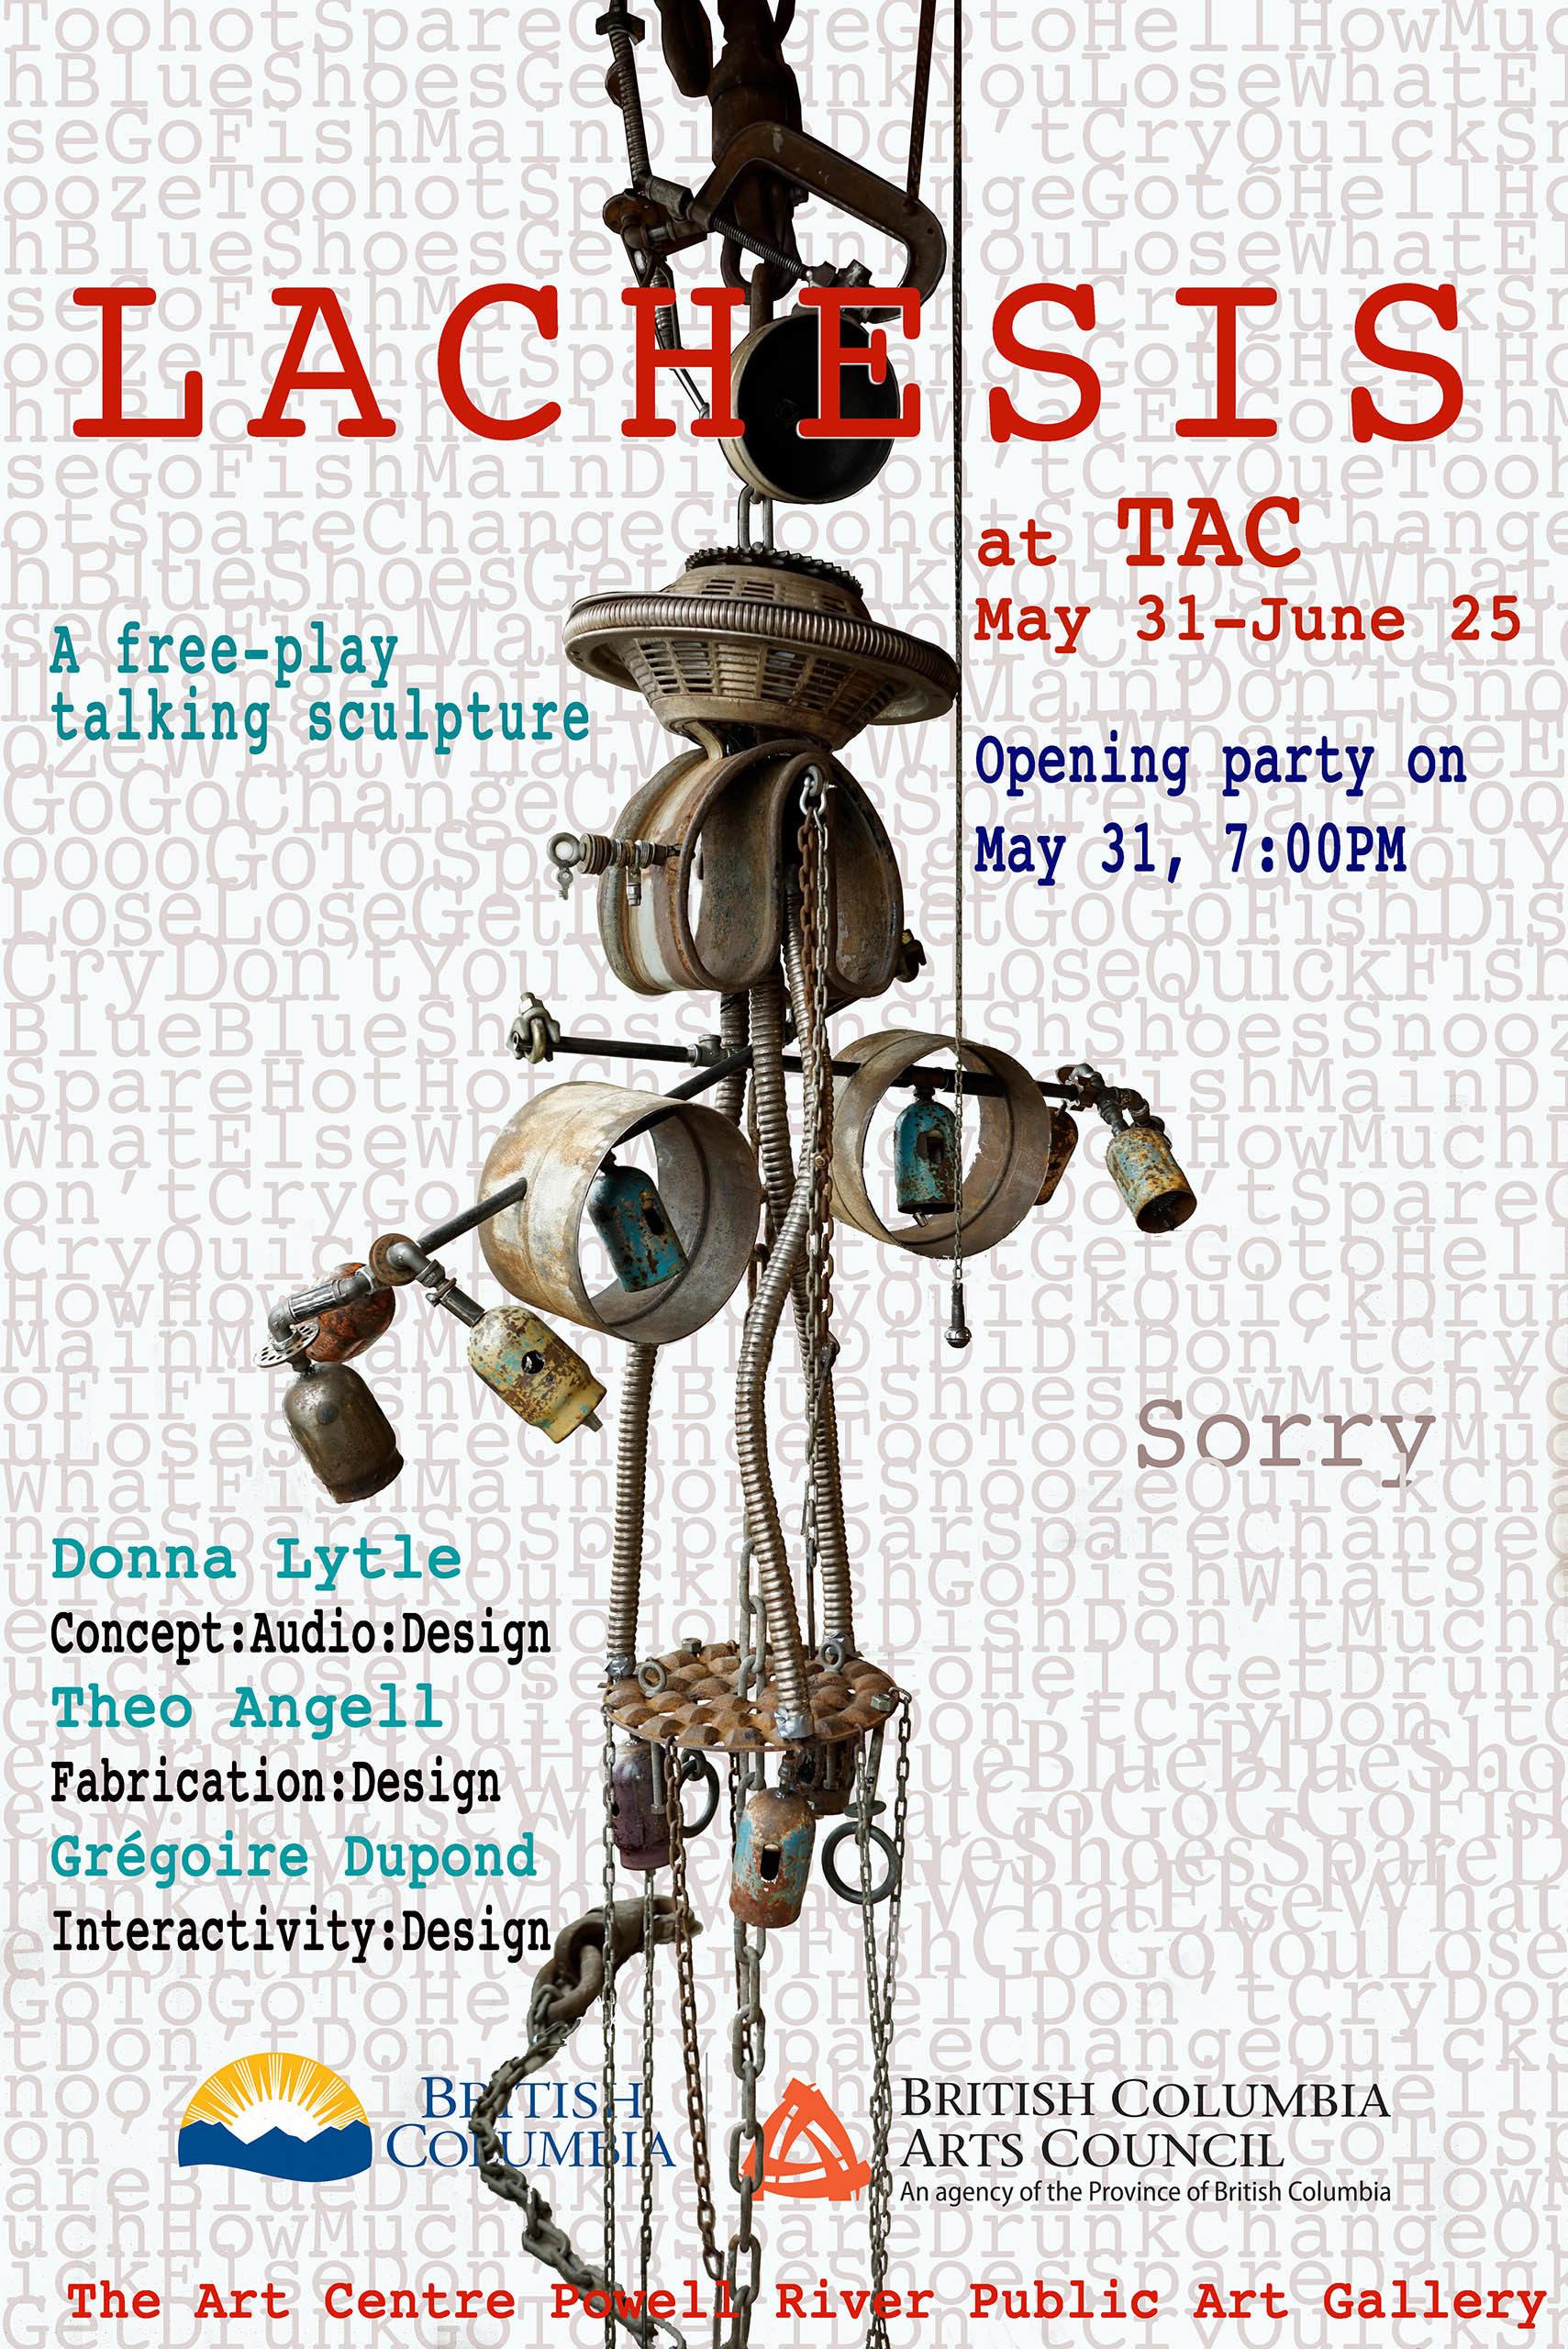 Lachesis a free-play talking sculpture by Donna Lytle, Theo Angell and Gregoire Dupond, Opening Party at TAC Powell River 2019 May 31st, 7:00pm